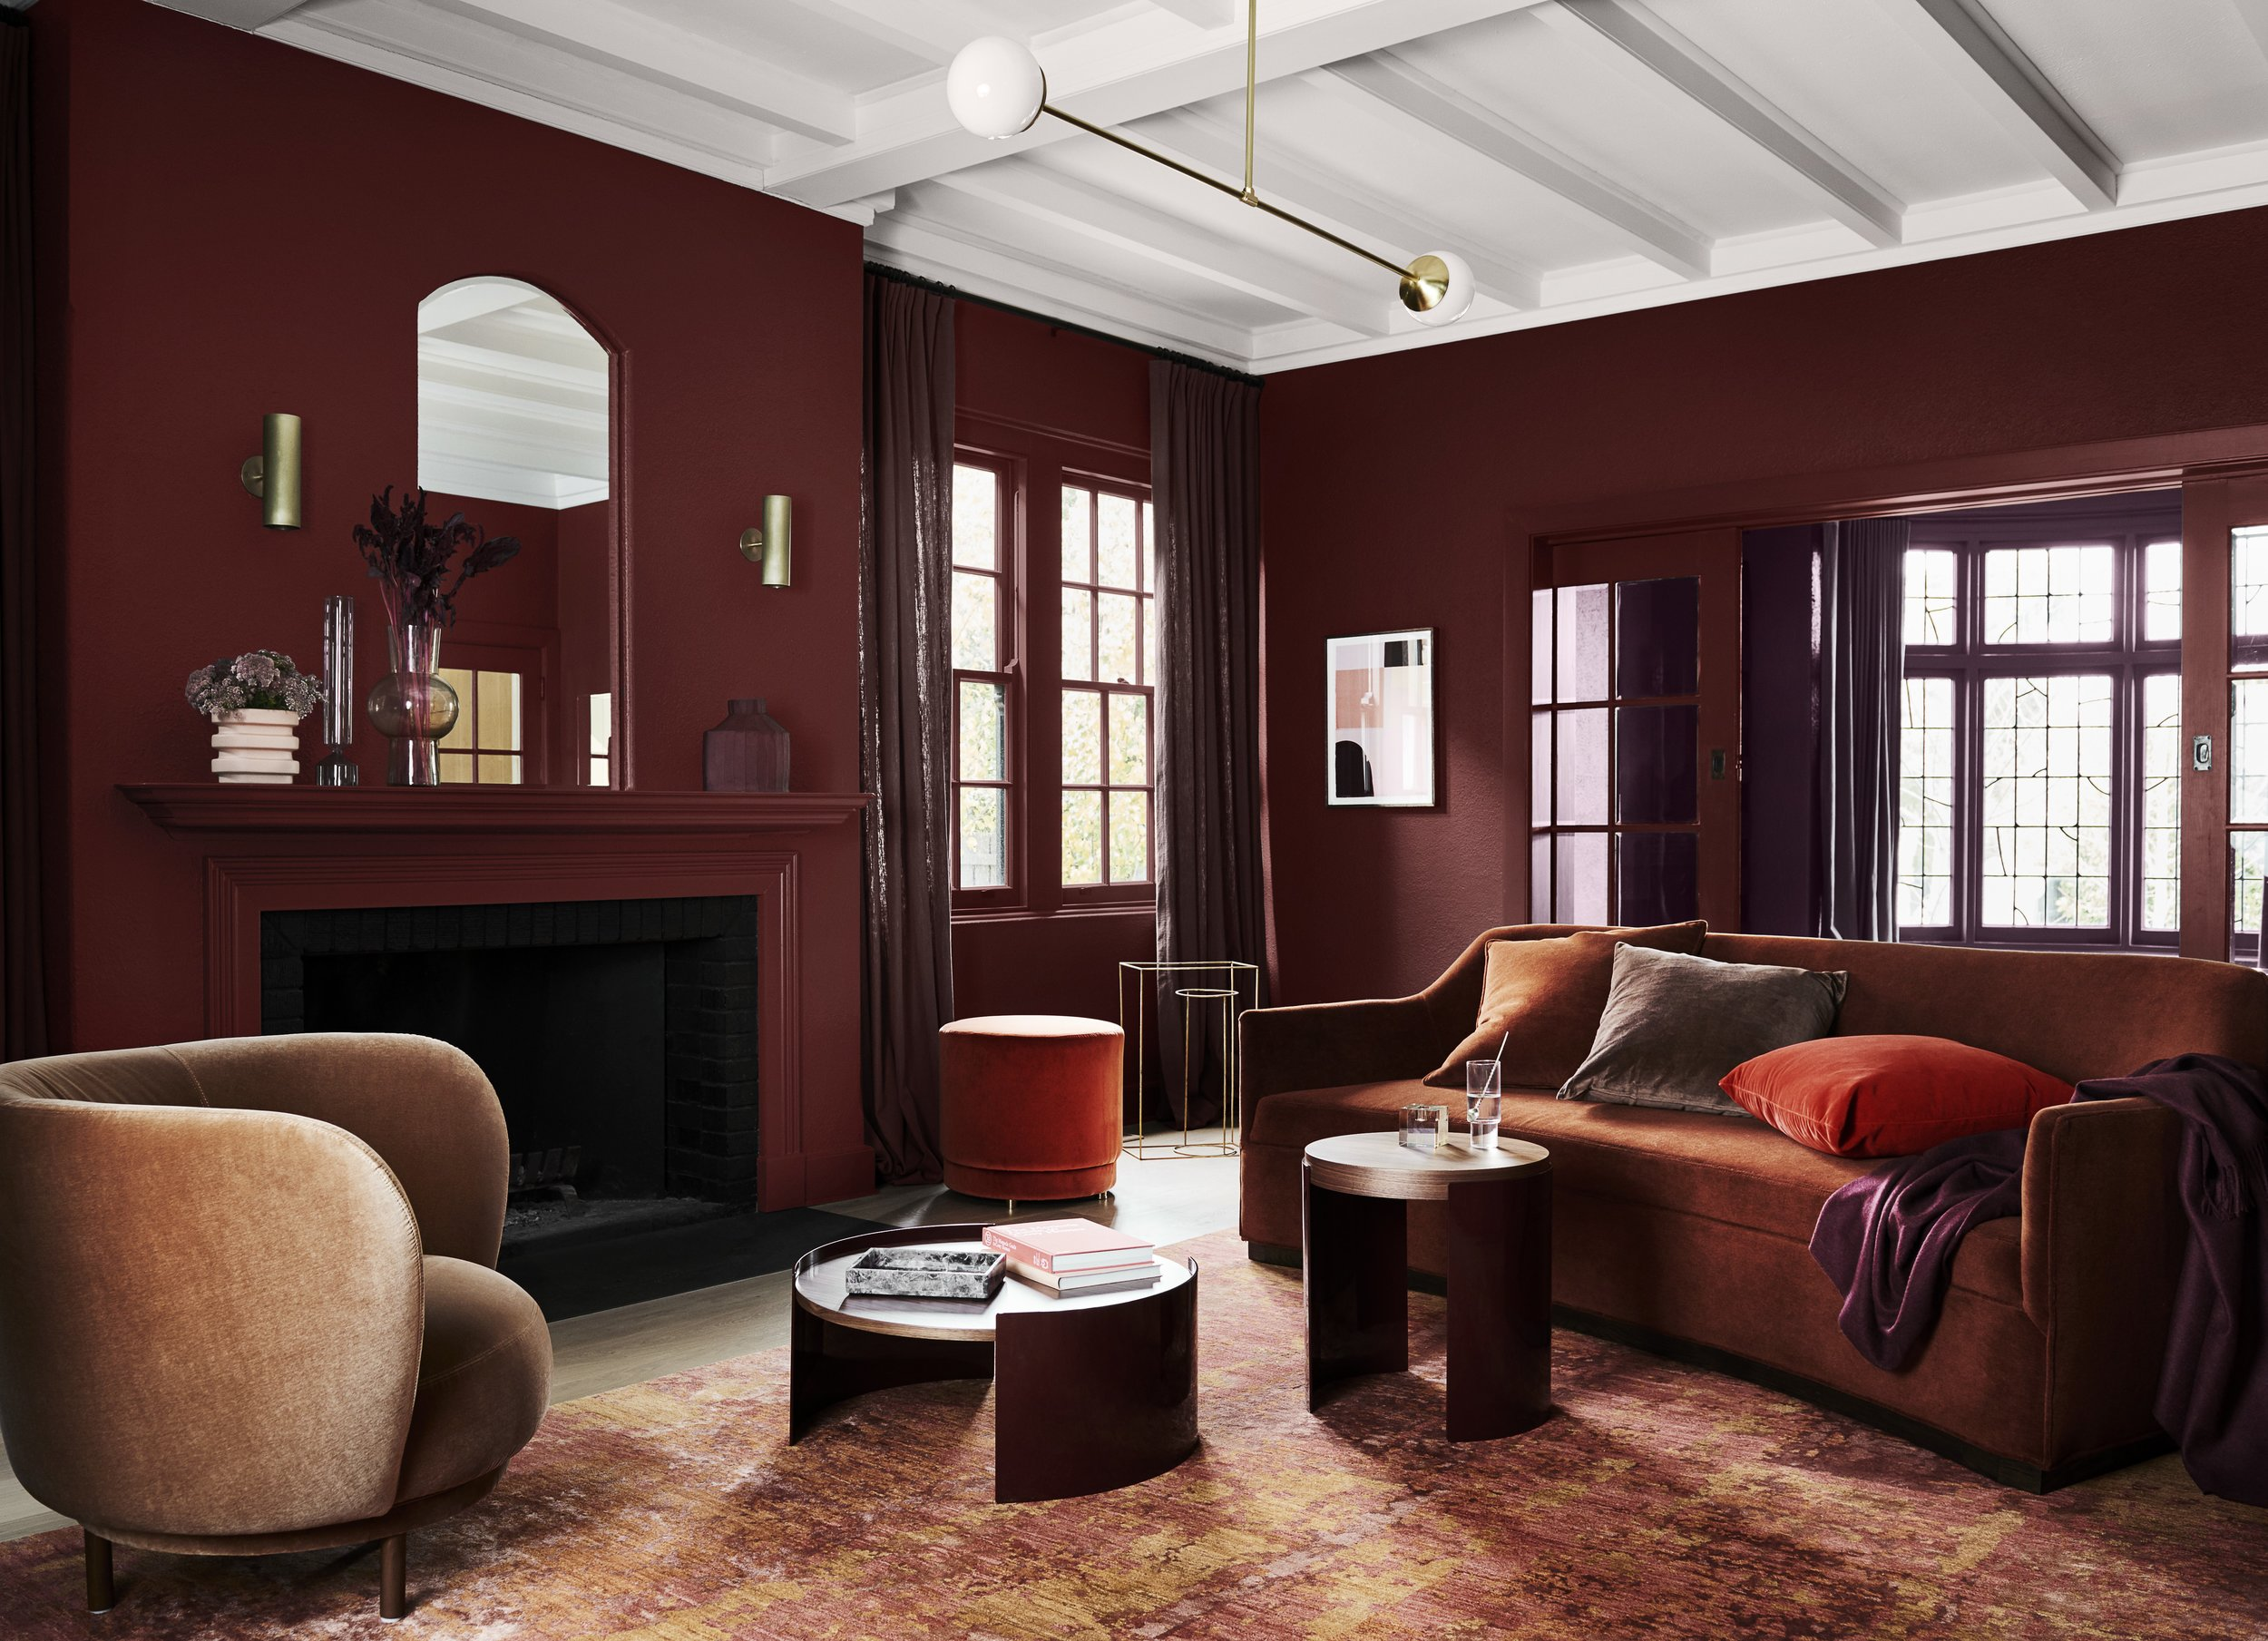 Dulux Colour Forecast 2020 – Indulge palette. Wall in Dulux Henna Red.